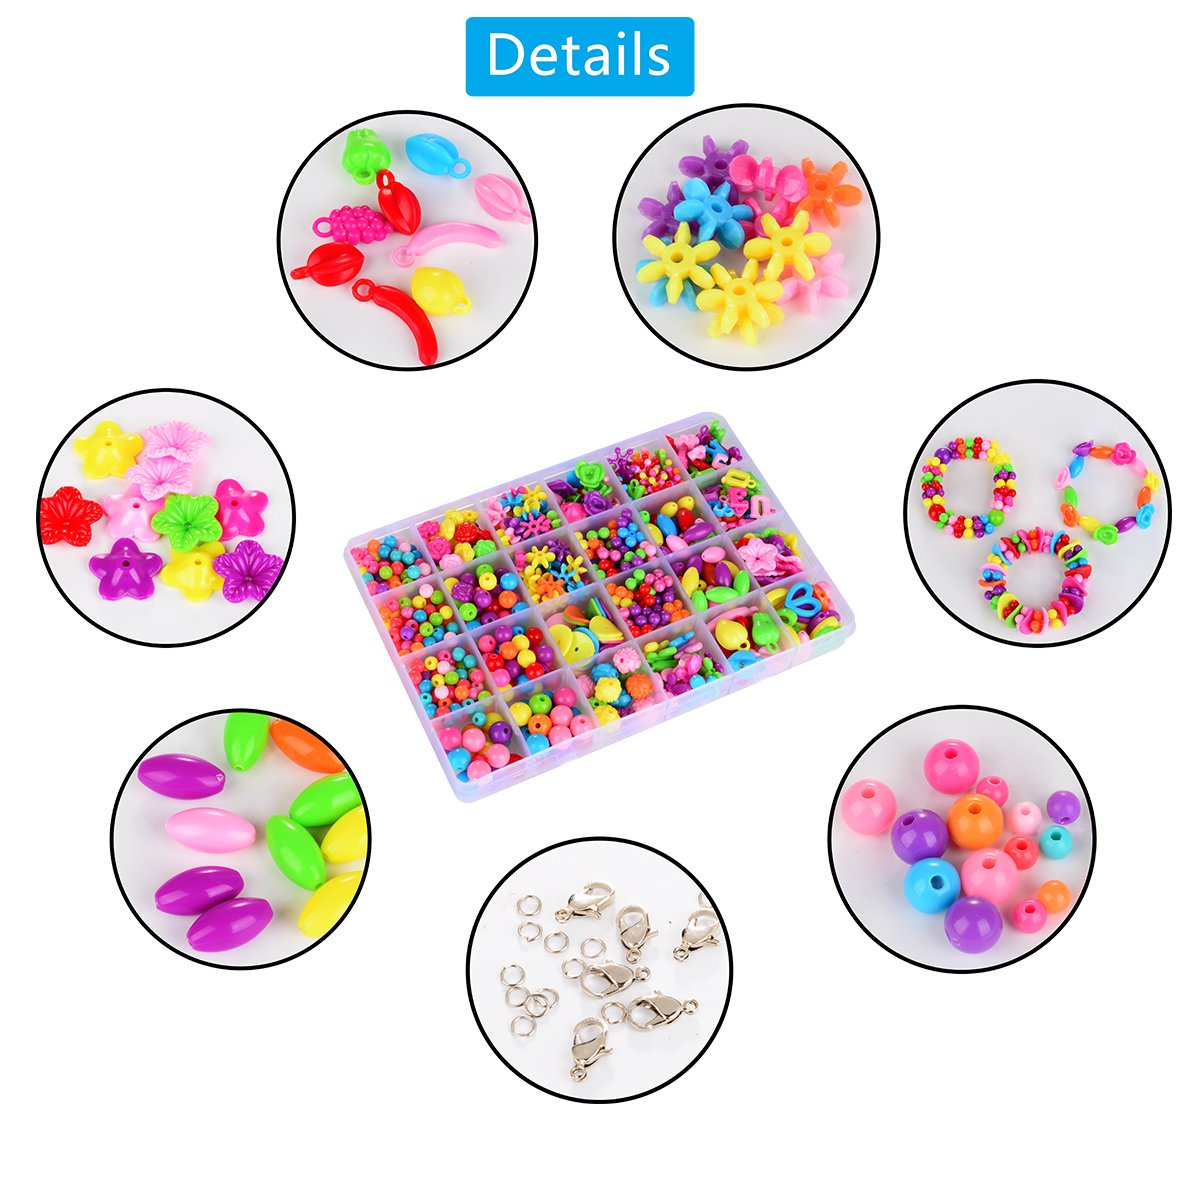 Licien Sunshine DIY Beads Set with Different Types and Shapes of Colorful Acrylic Jewelry Beads in a Box for Children Necklace and Bracelet Crafts gift Best DIY Beads Toys for children 4th to 12 By